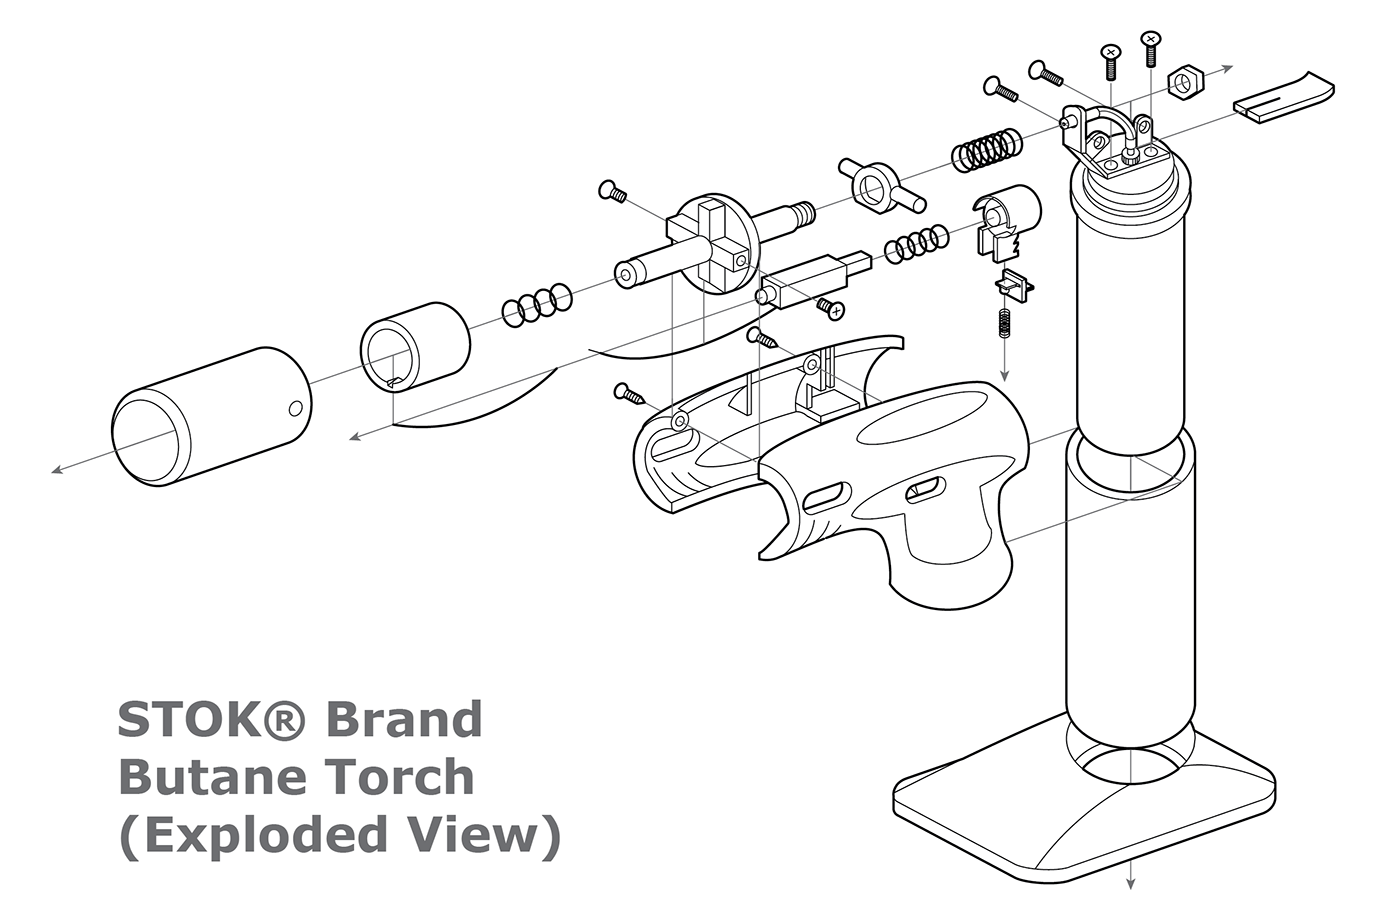 Orthographic, Exploded View, and Technical Drawings on